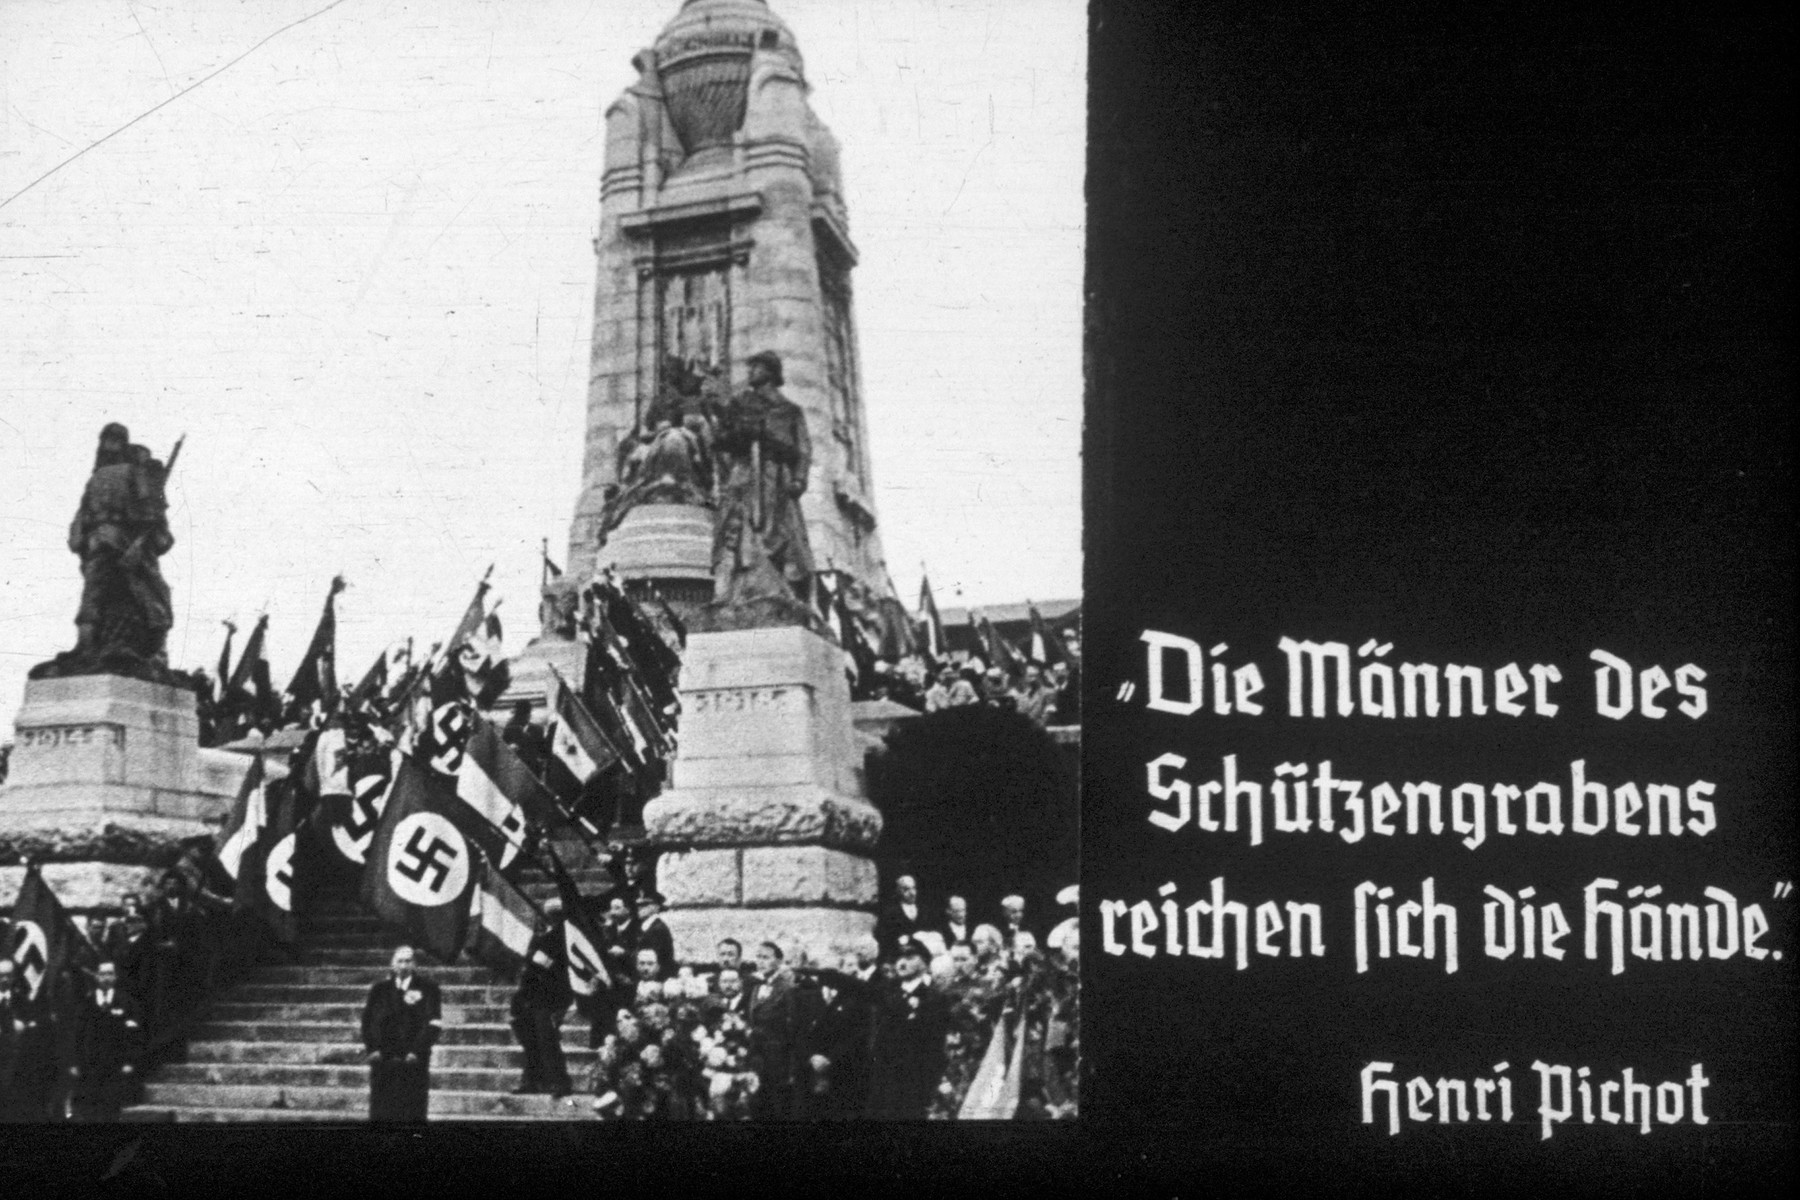 2nd slide from a Hitler Youth slideshow about the aftermath of WWI, Versailles, how it was overcome and the rise of Nazism.